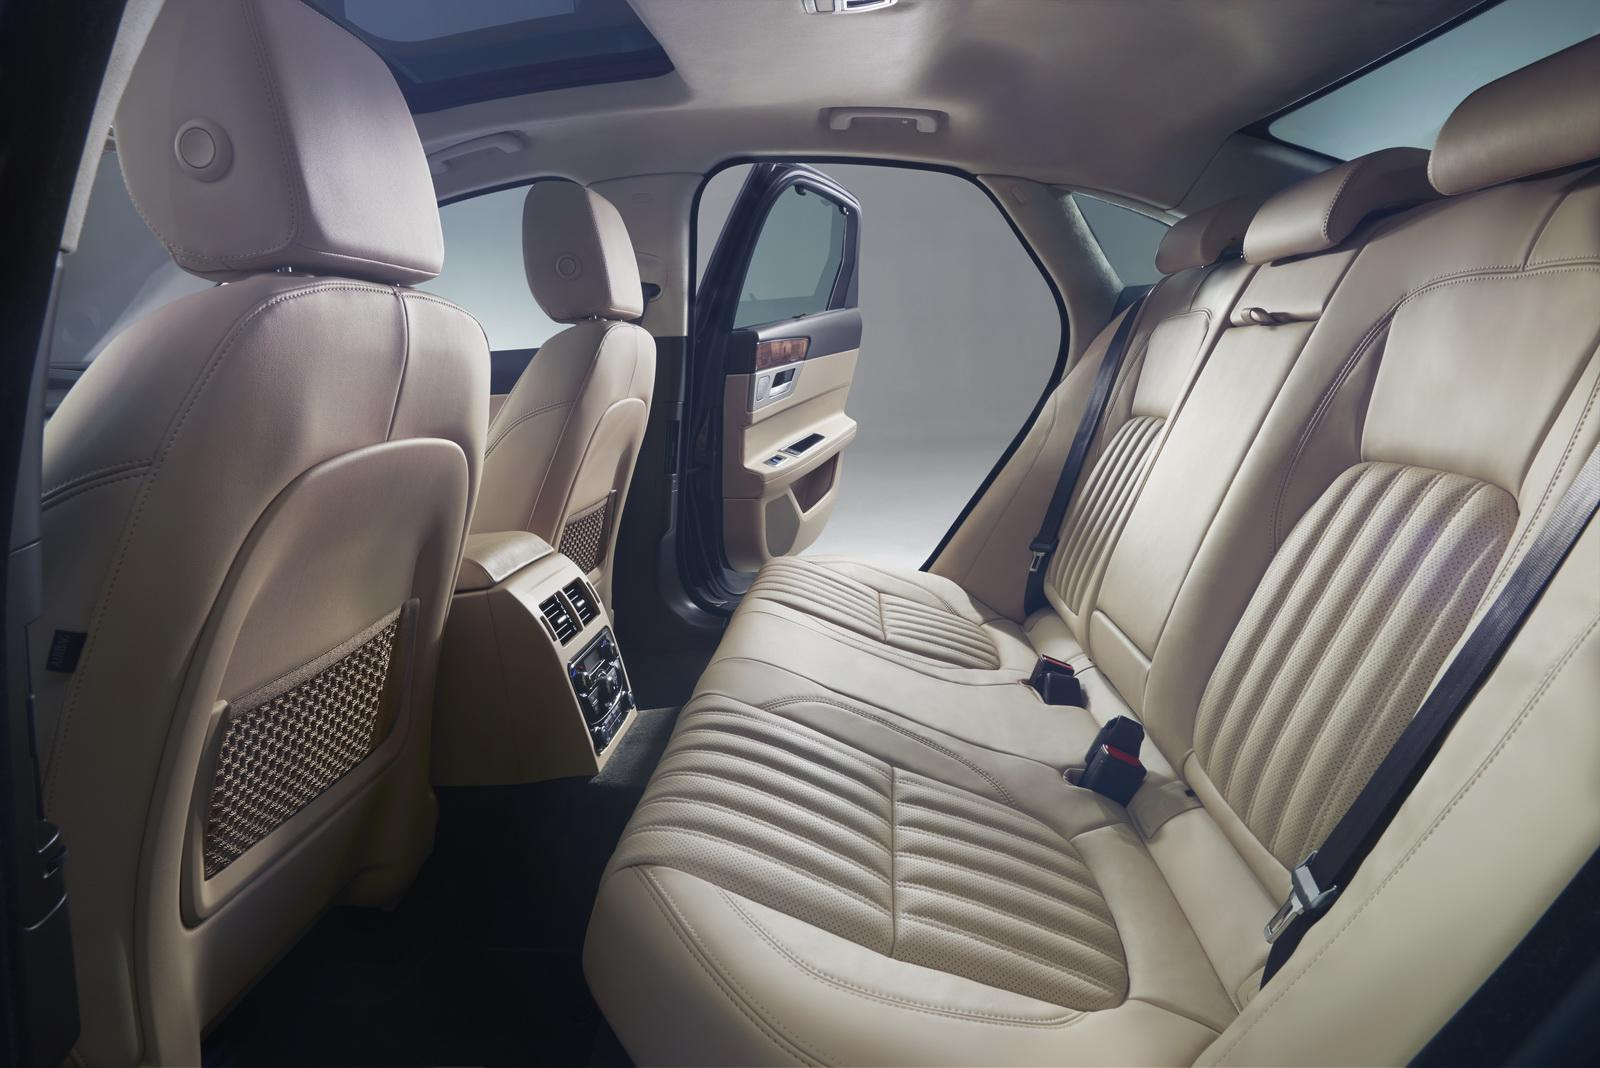 2016 Jaguar XF rear seat official image